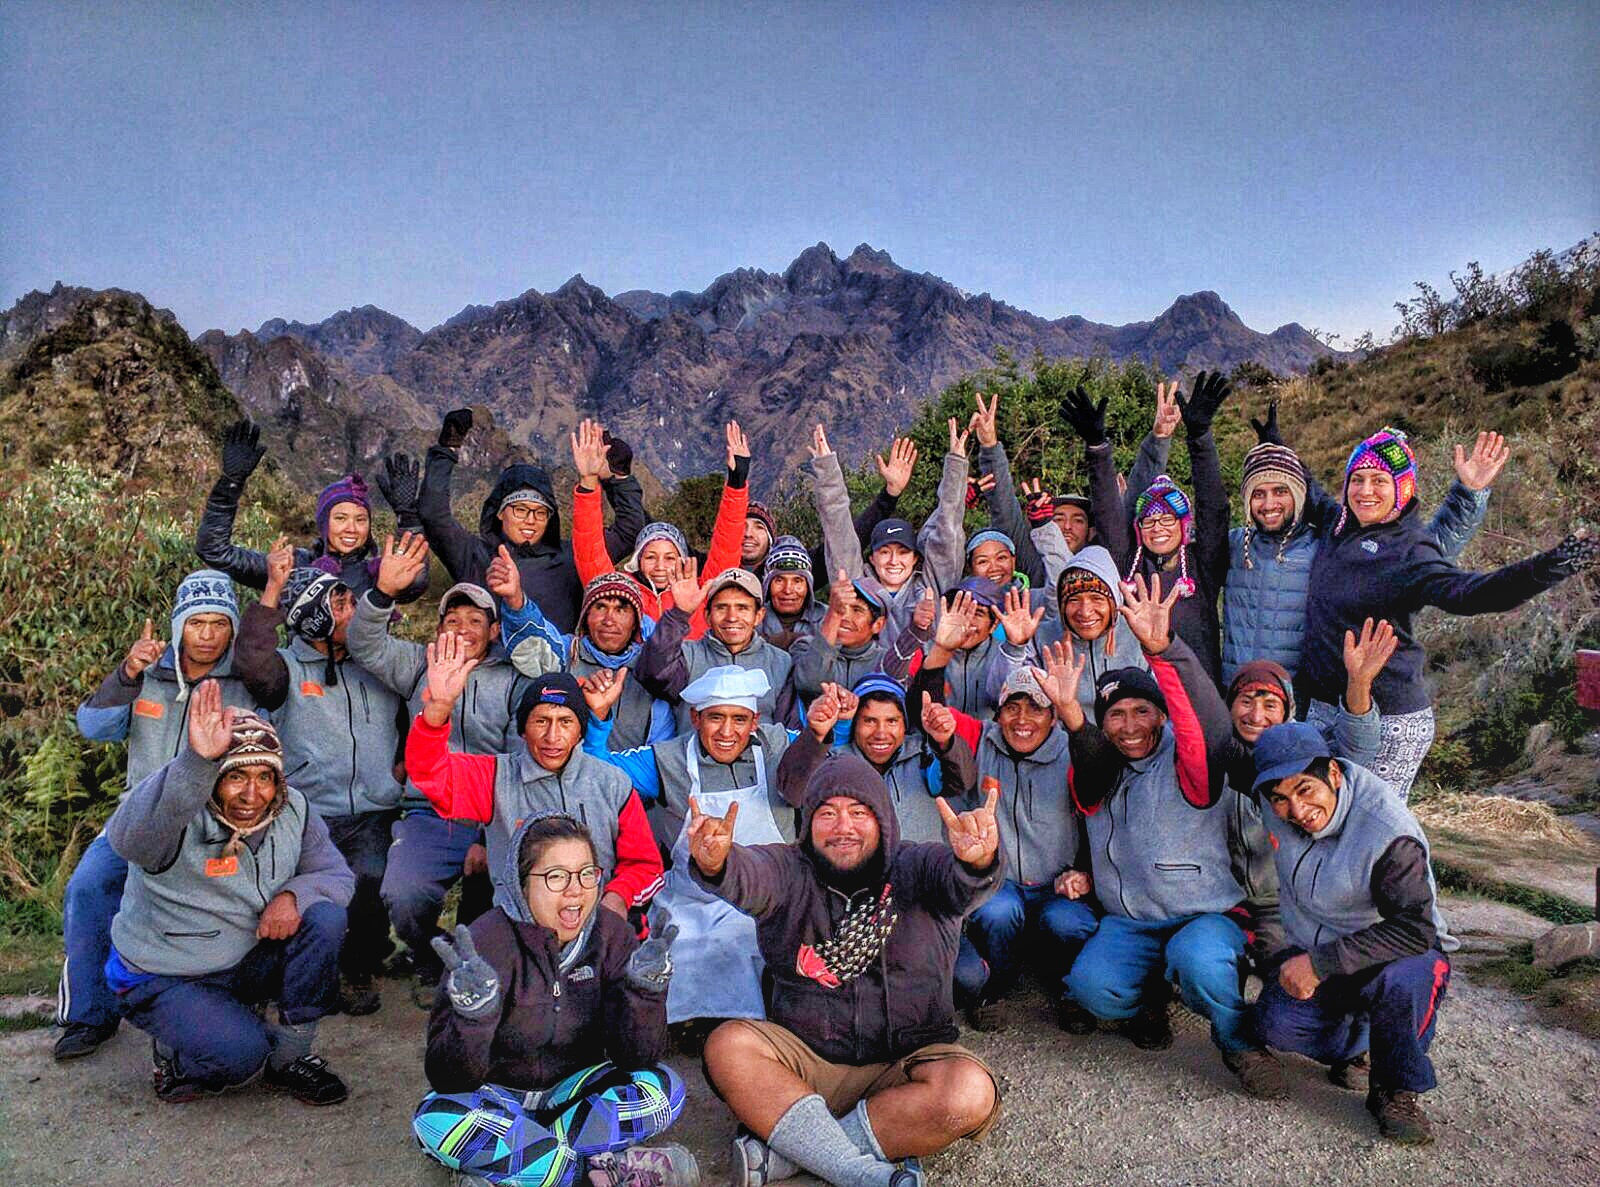 The cast and crew of the hike. We could not have done this with the support of one another. Our porter and kitchen crew were on top of their game. The porters carried not only our belongings up and down steep inclines without breaking a sweat, they set up our camps and made us feel comfortable in the Andes.